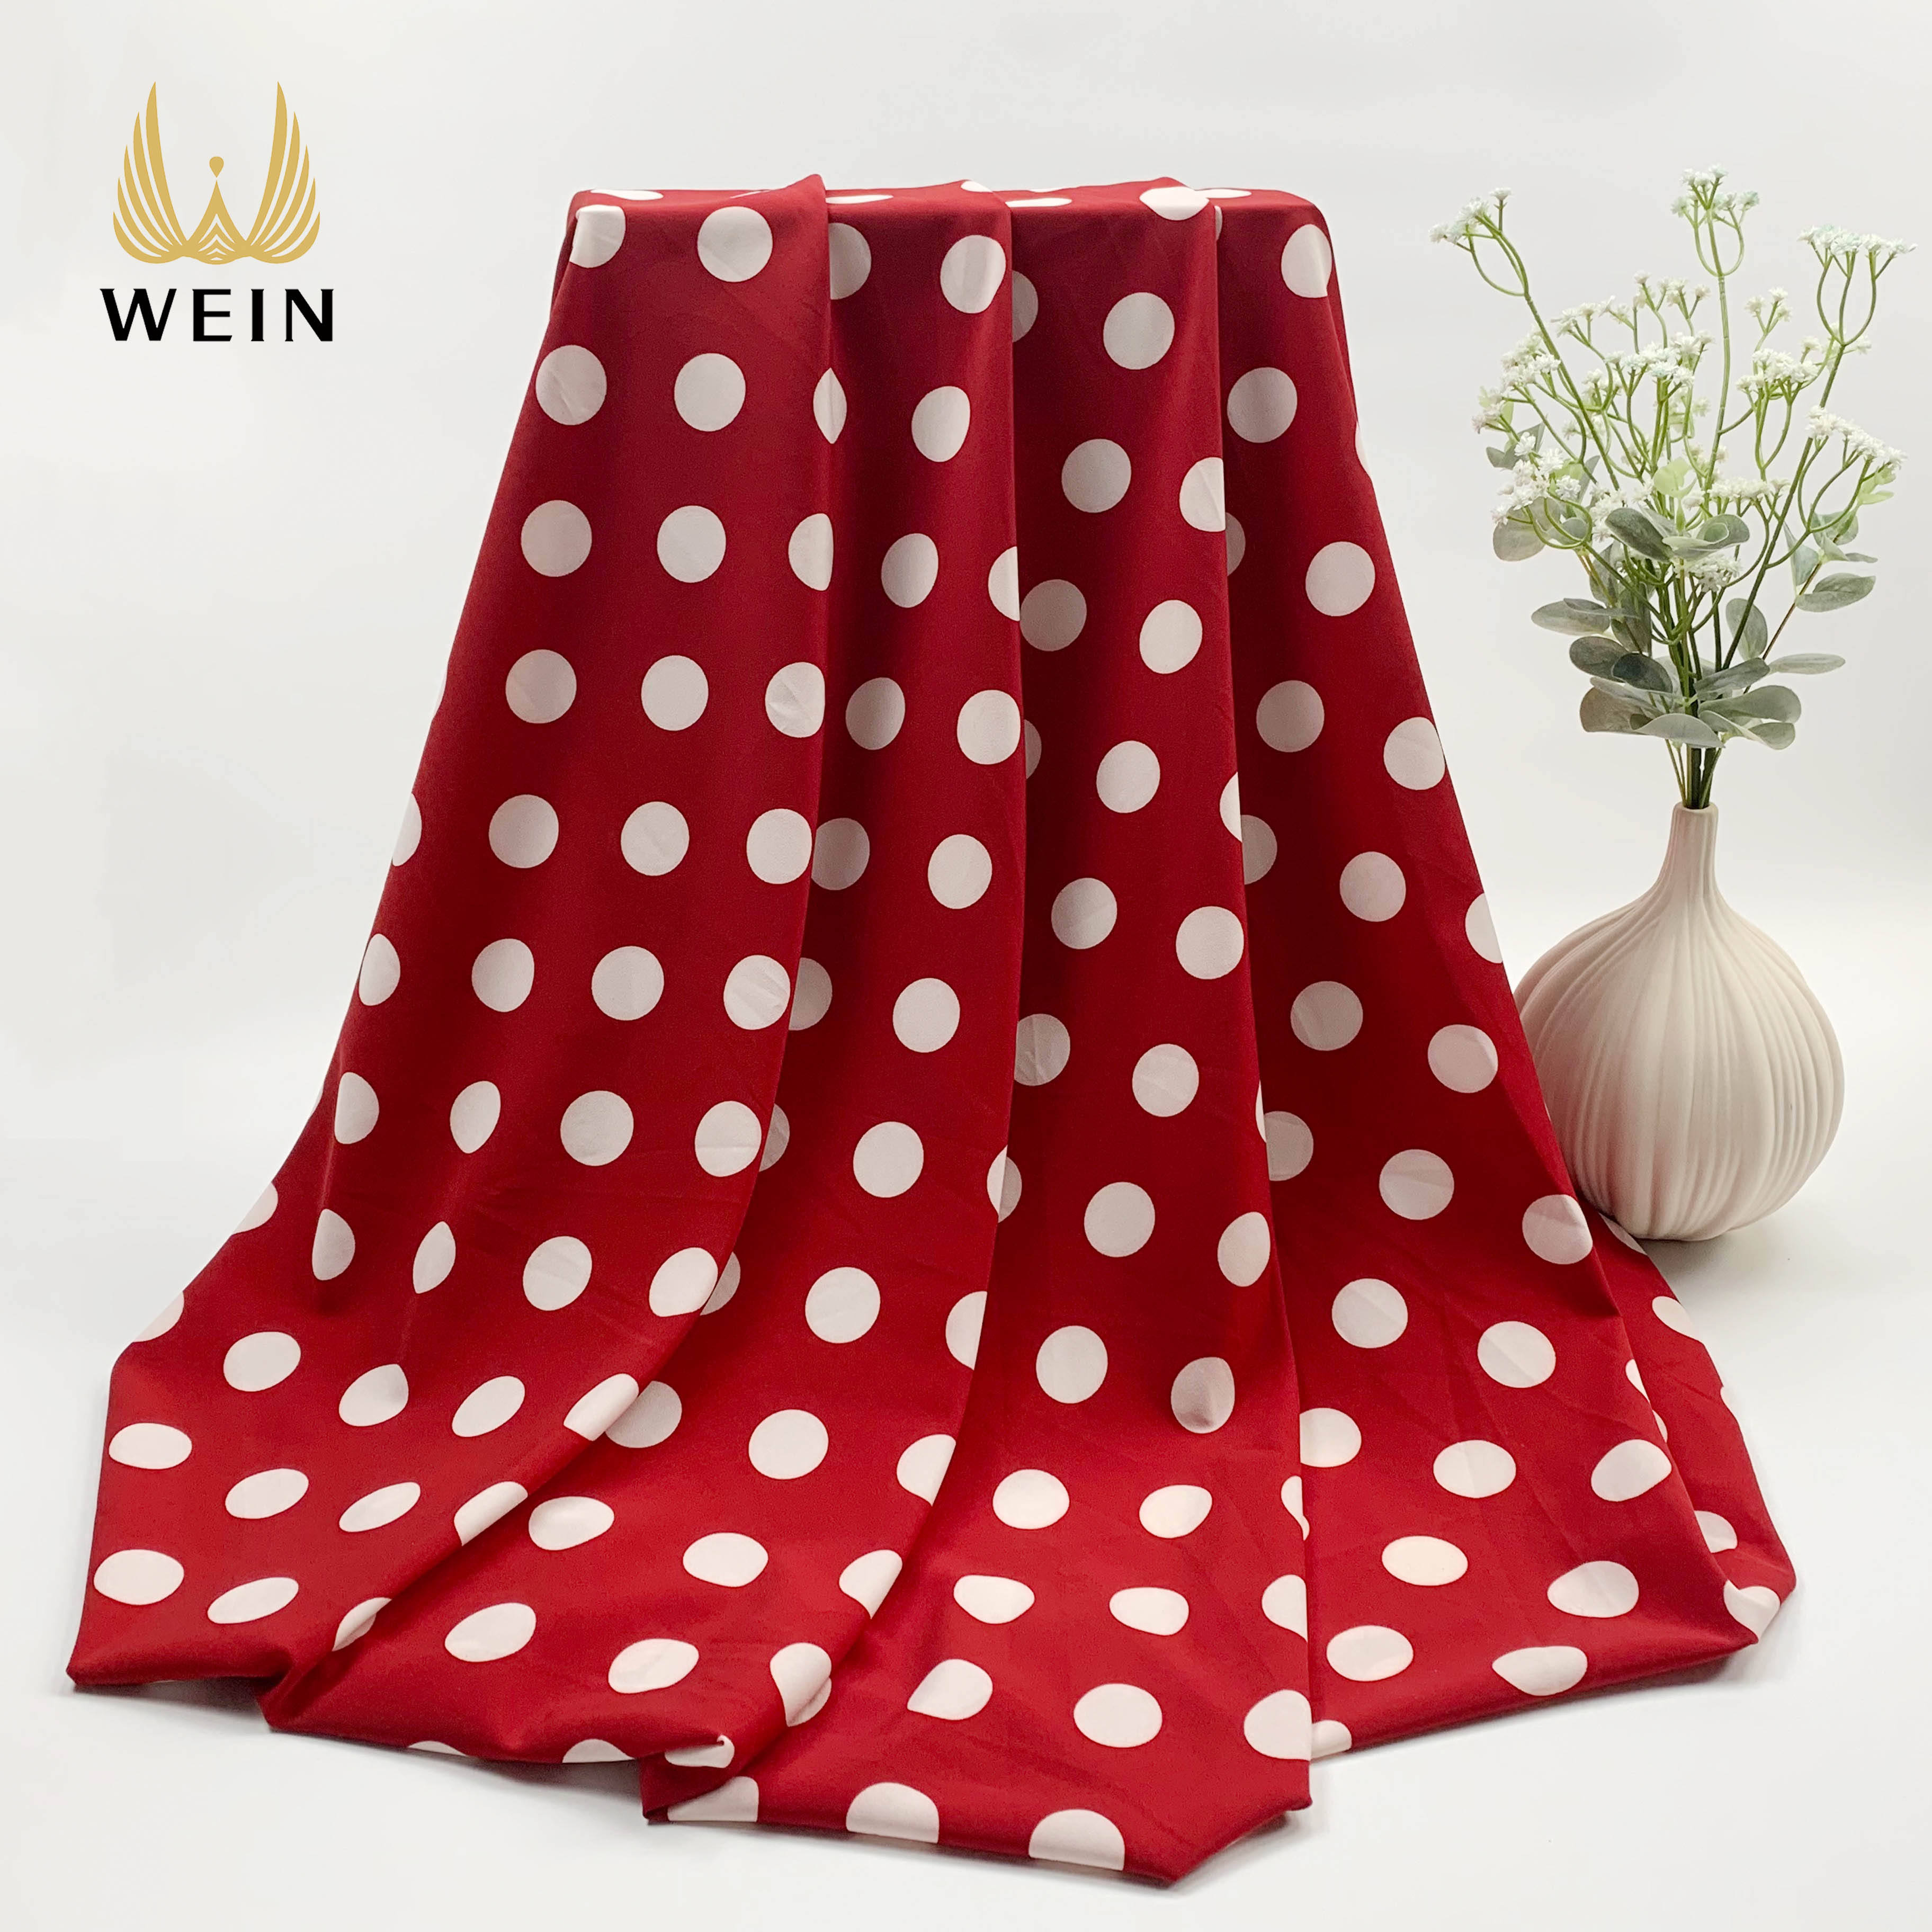 WI-D04 Polyester spandex 4 way stretch red and white polka dot print dress fabrics